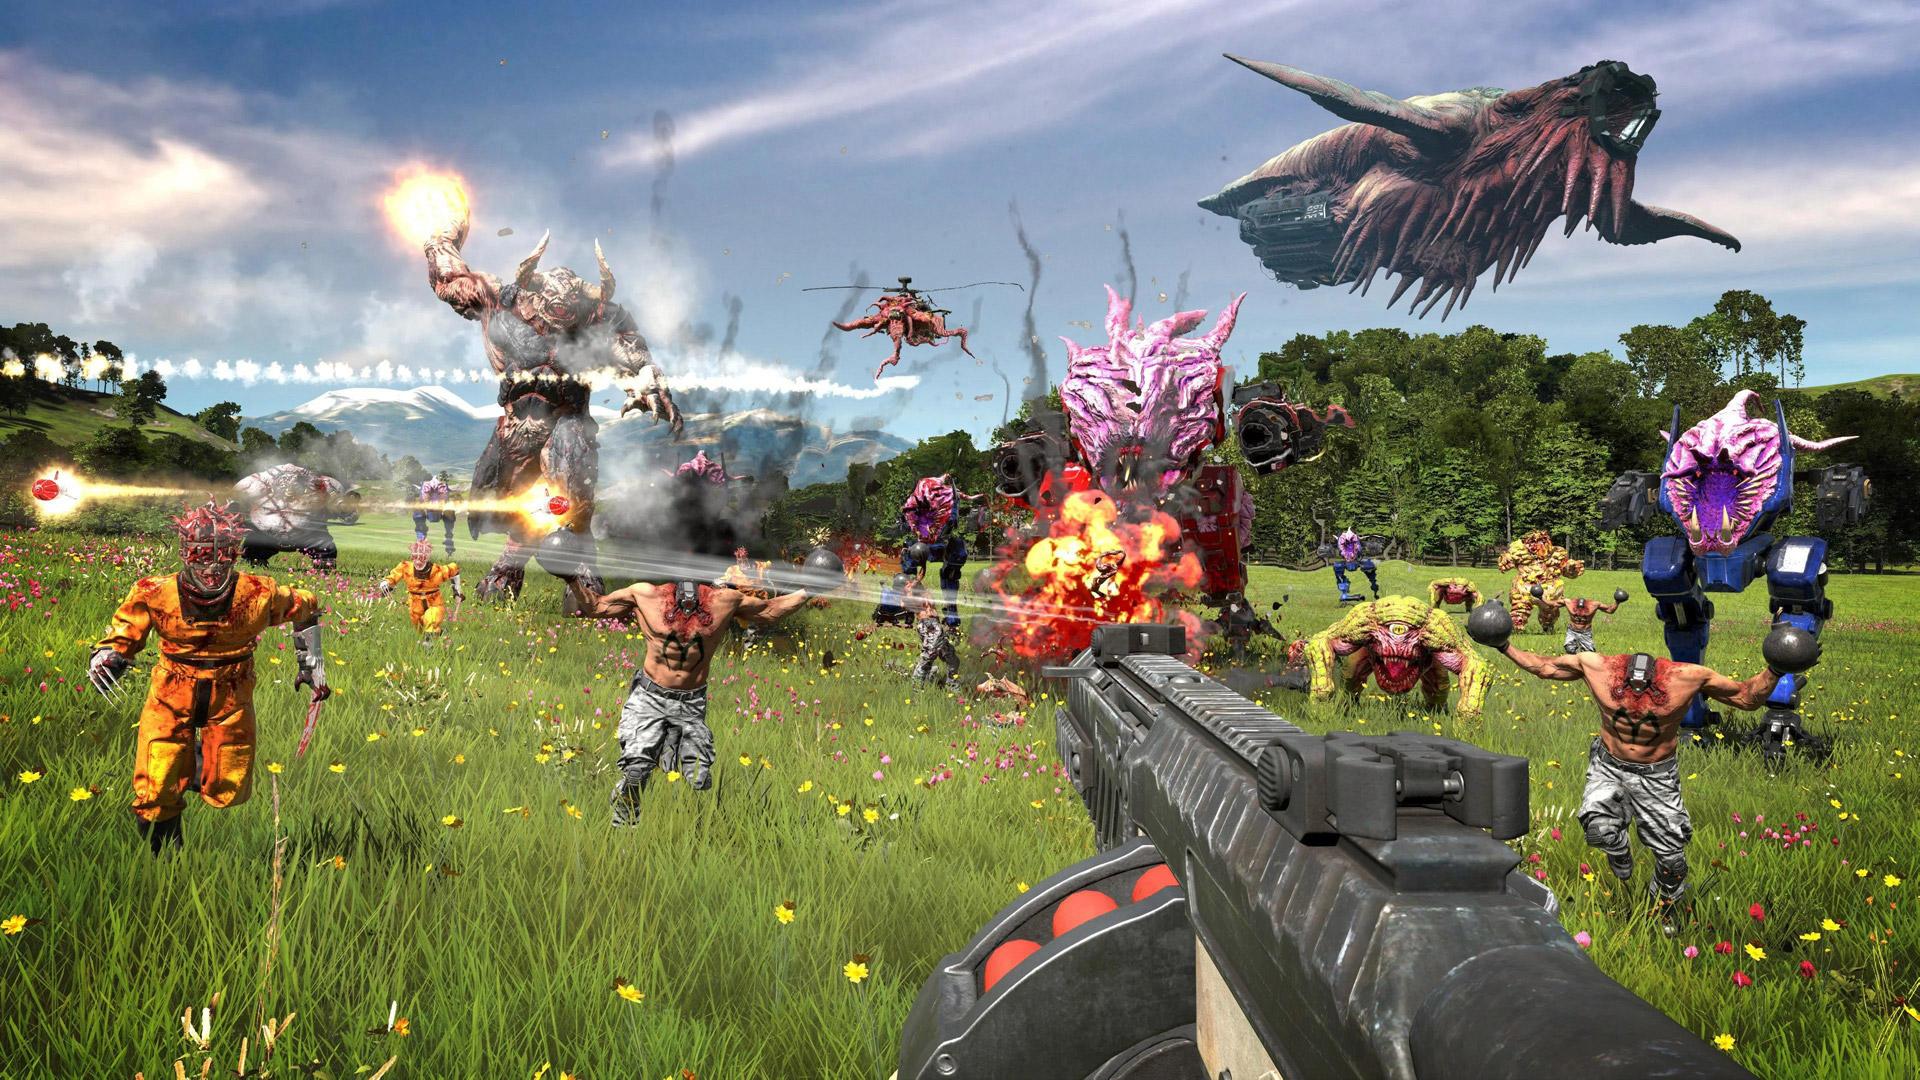 Free Serious Sam 4: Planet Badass Wallpaper in 1920x1080